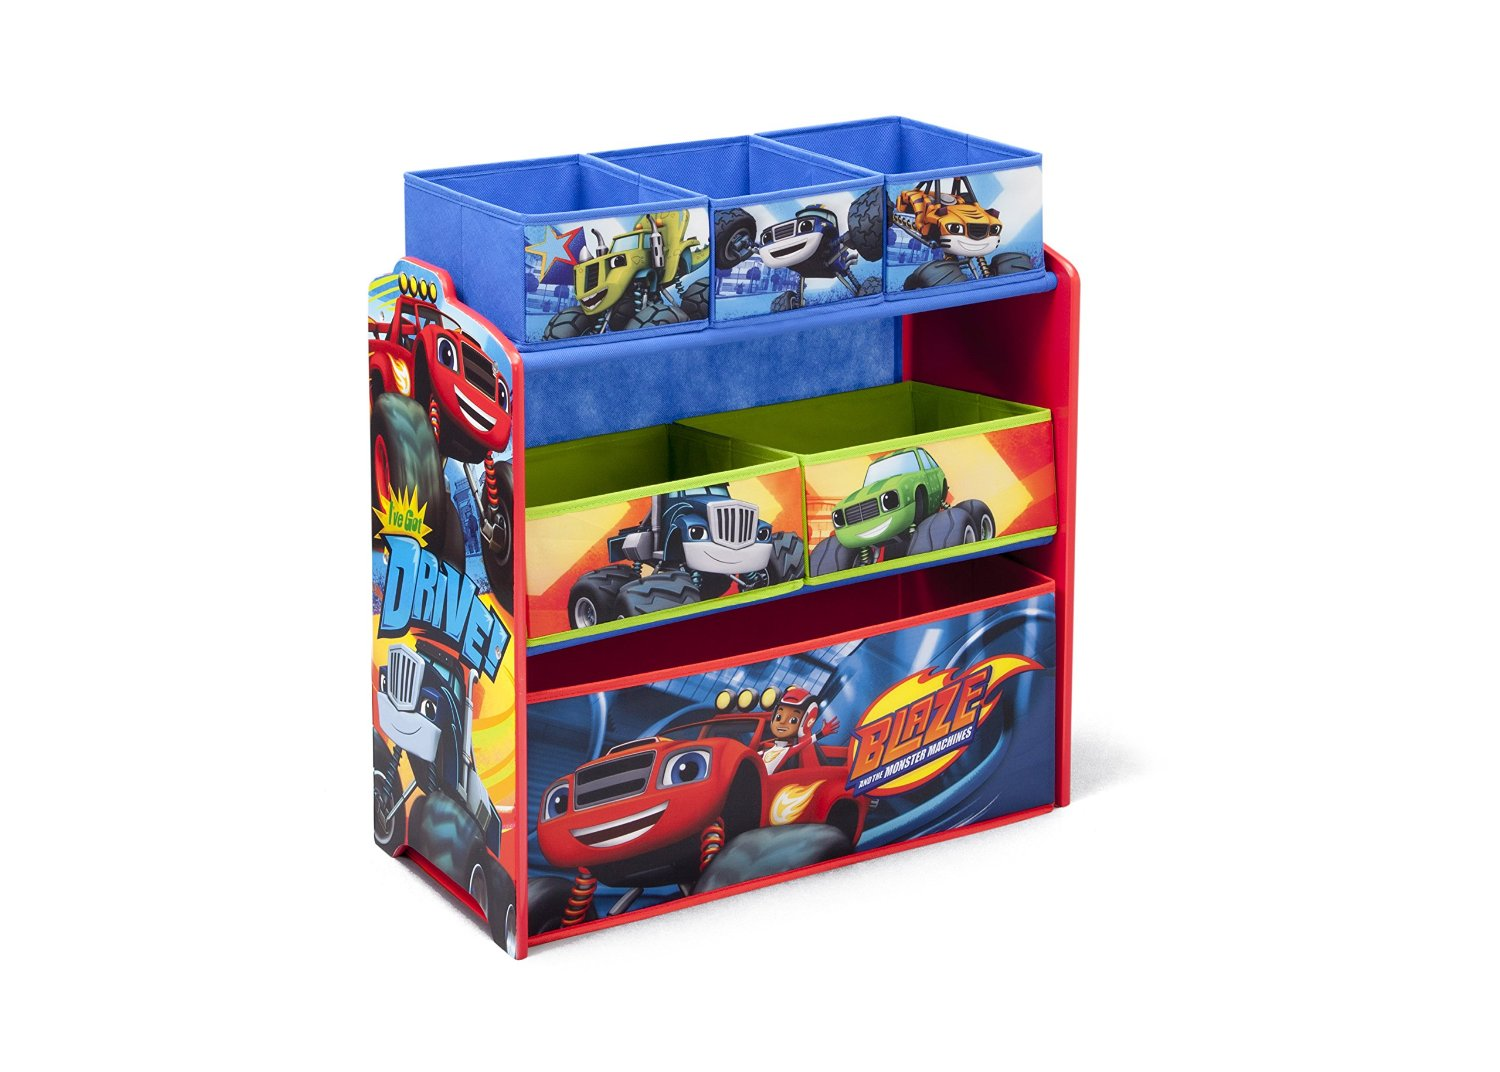 Car Toy Organizer : Types of toy organizers for kids bedrooms and playrooms